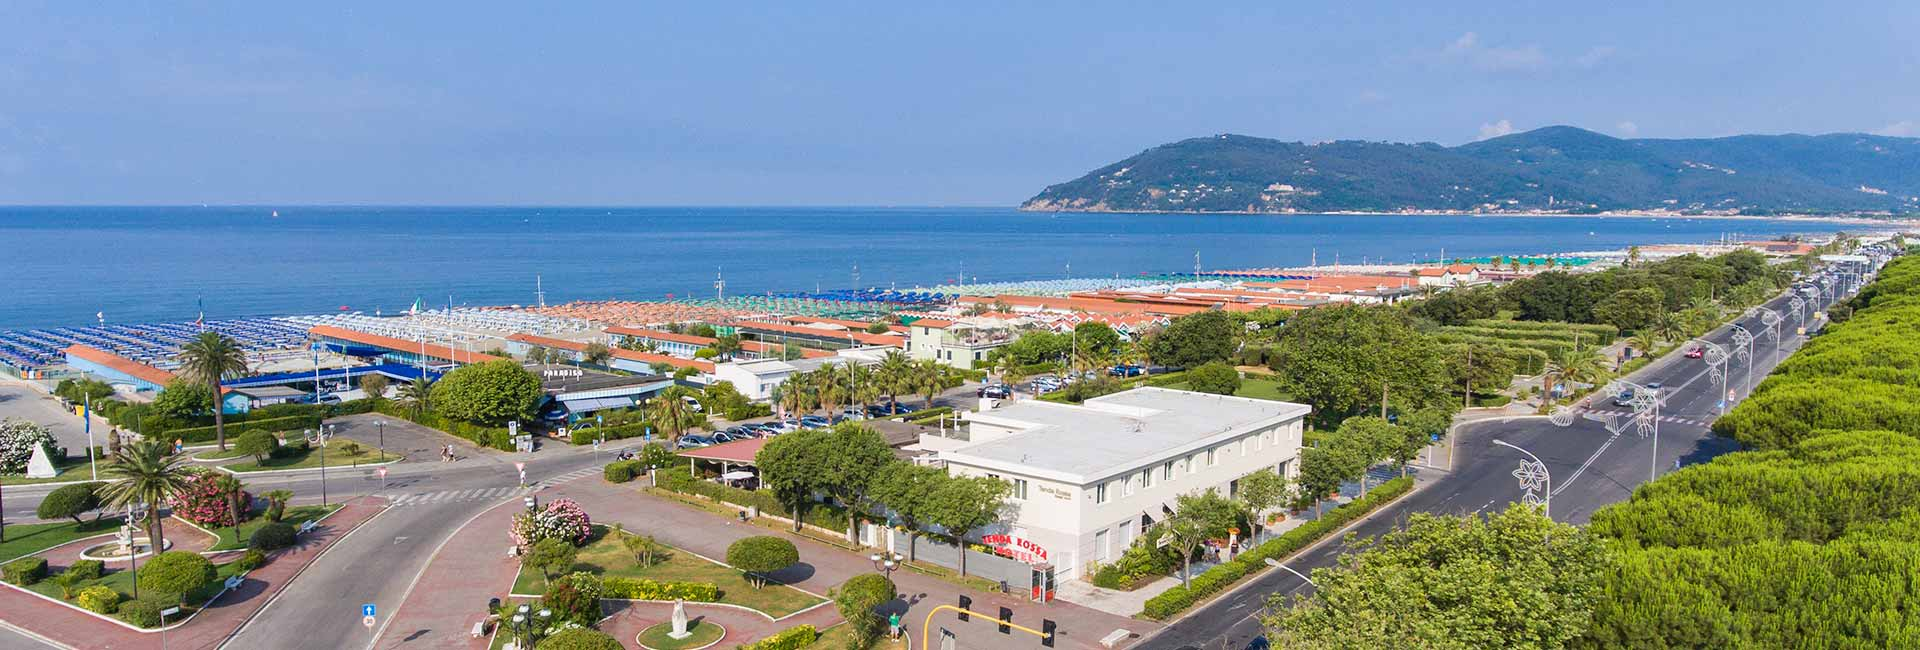 Hotel prices, hotel tenda rossa in Marina di Carrara